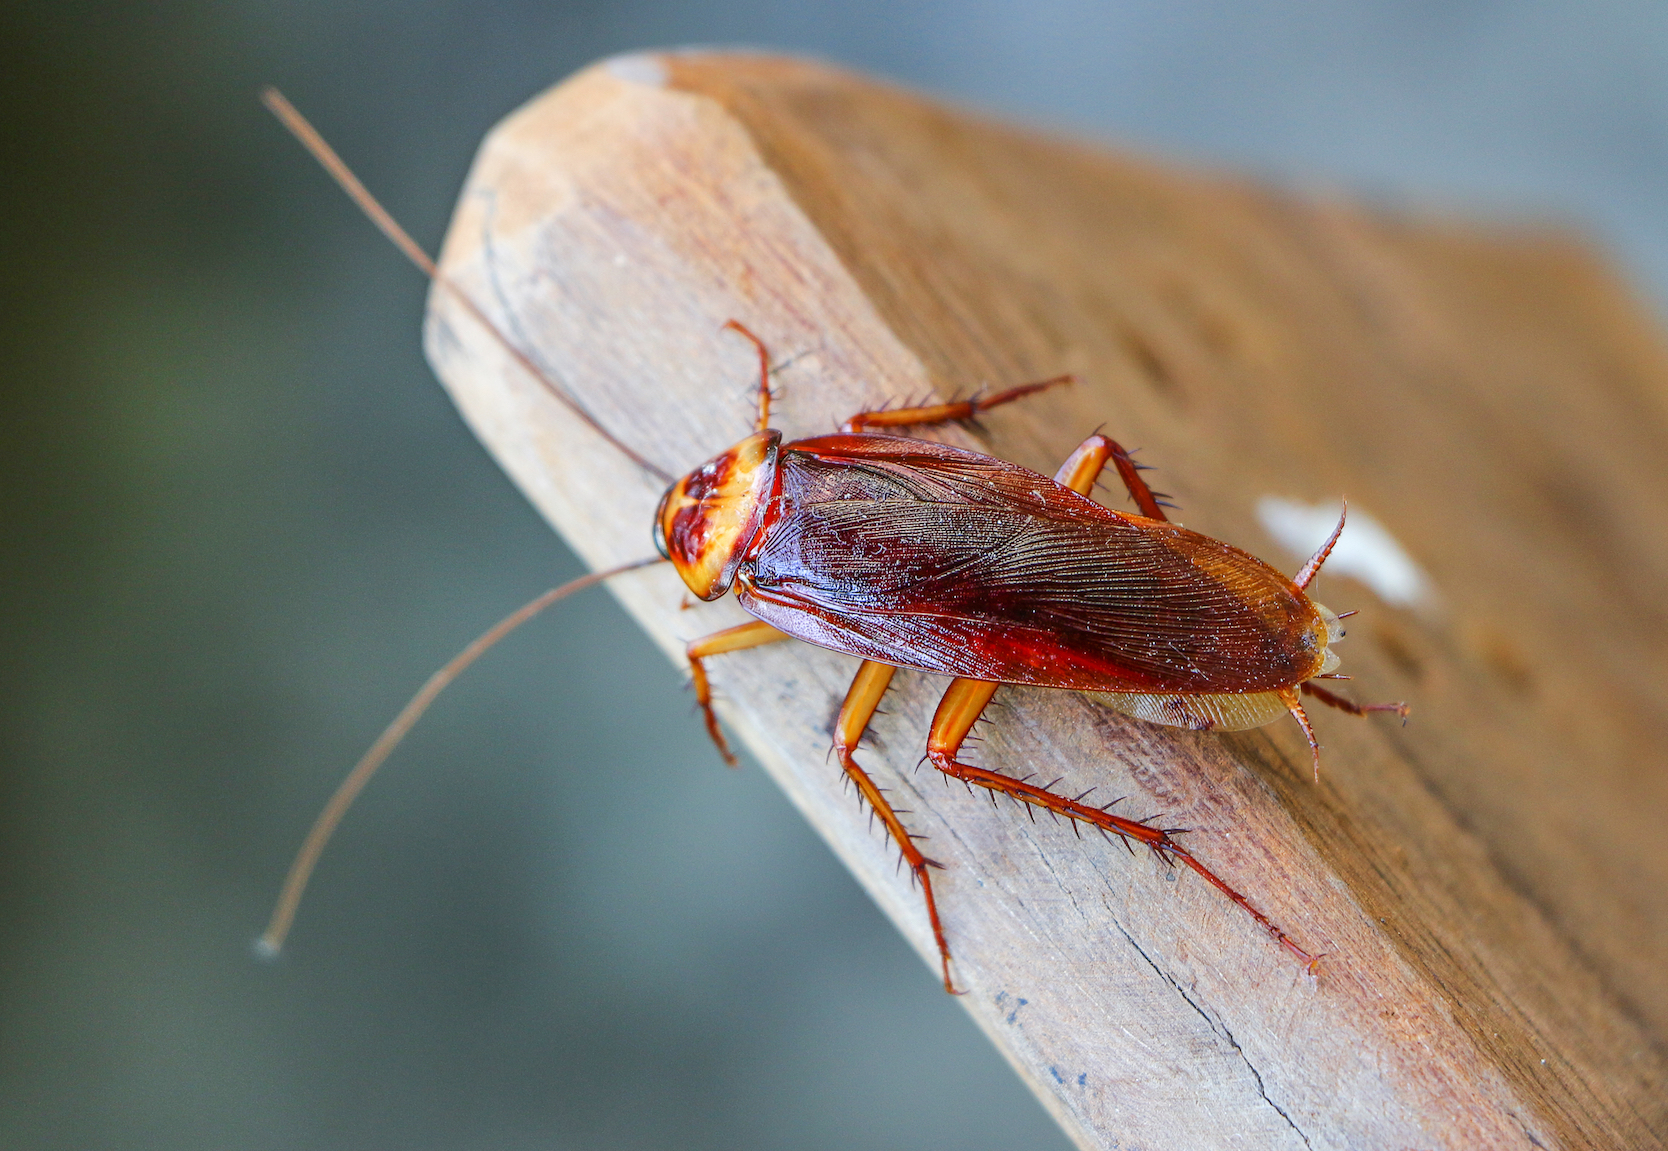 Researchers have discovered why cockroaches are so resilient and frankly difficult to kill, and the answer lies in their genes.